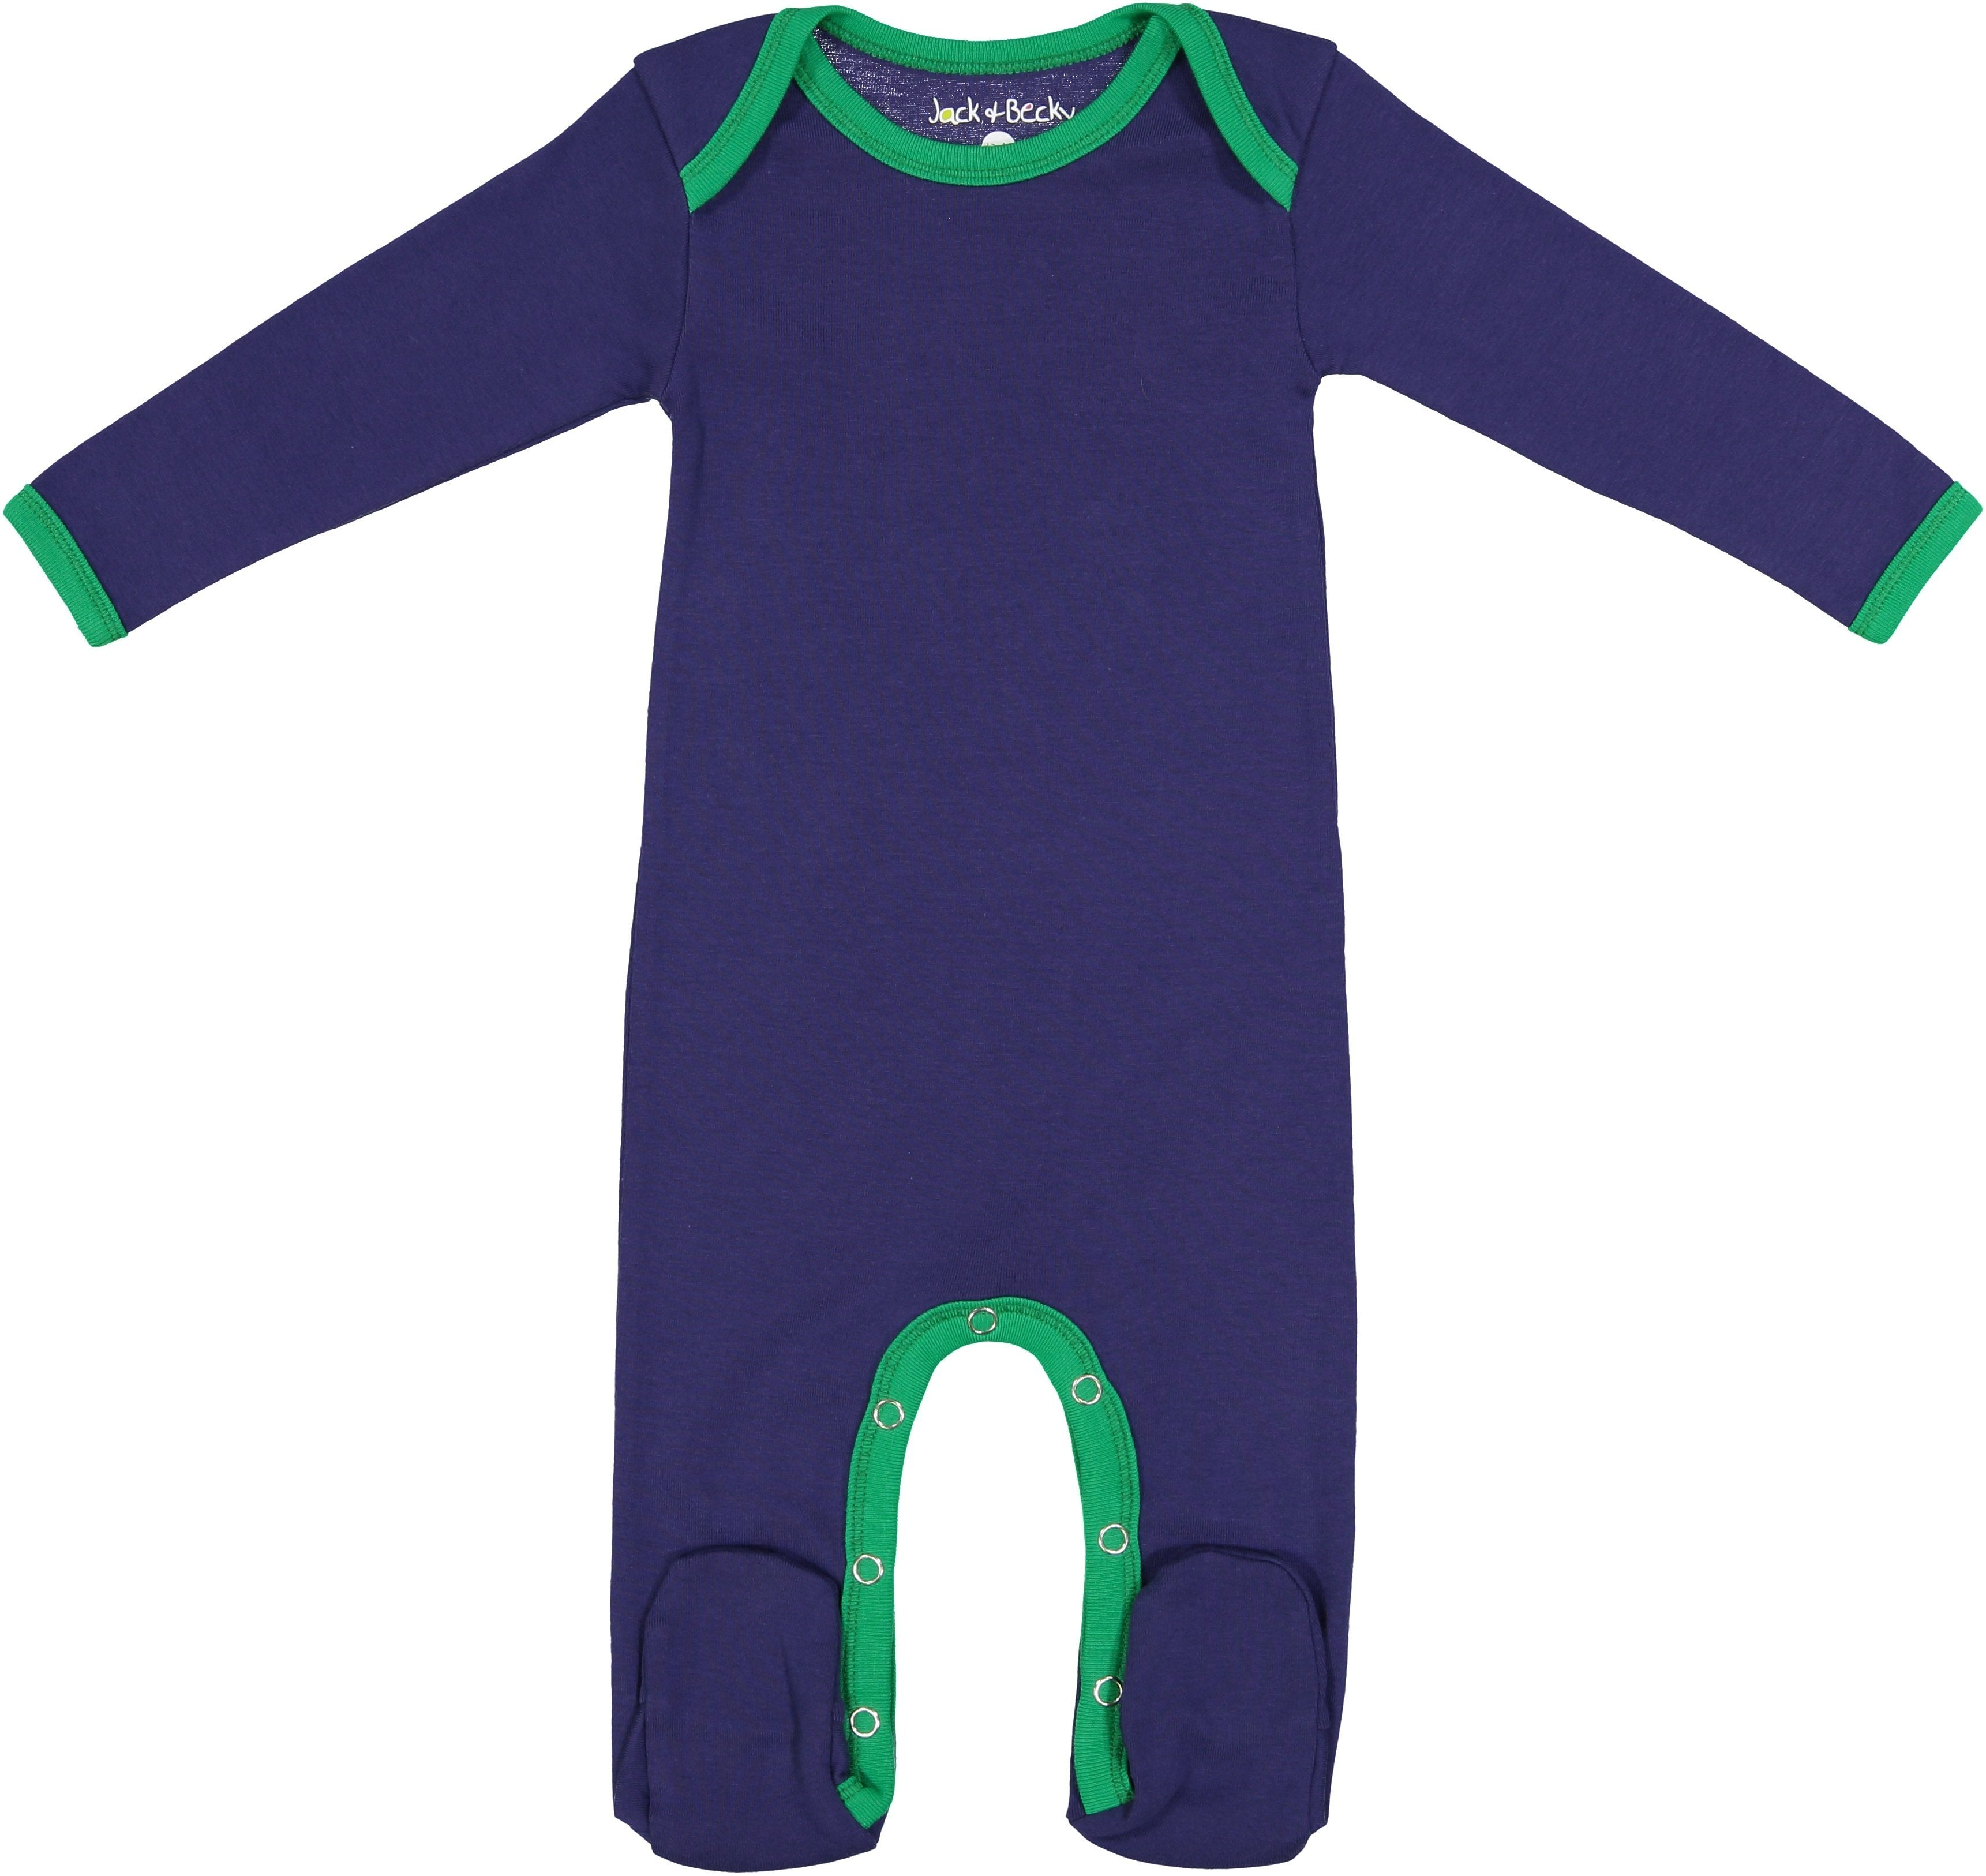 Jack and Becky Blue Onesie With Green Trim